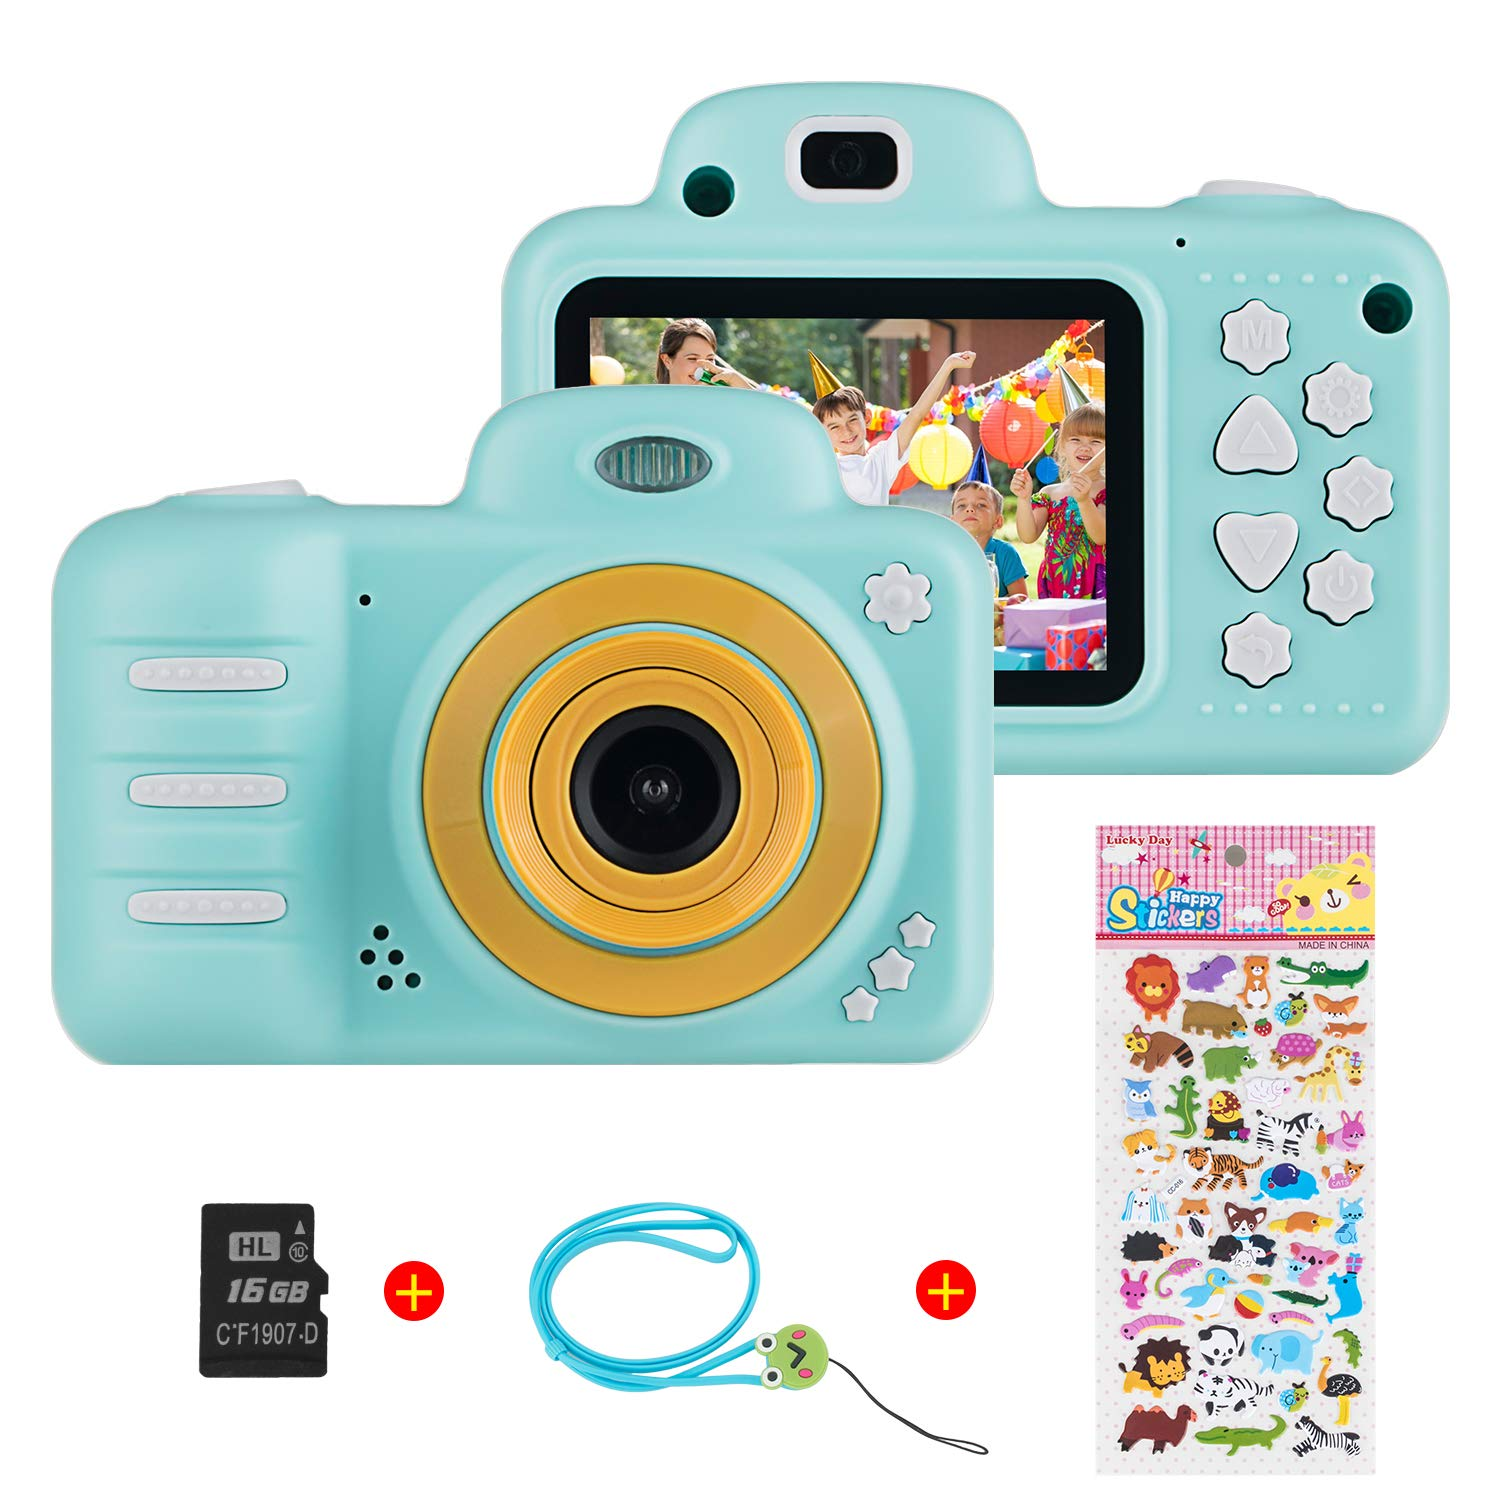 Themoemoe Kids Camera, Camera for Kids Video Cameras Kids Digital Camera 8MP 1080P HD Toys for 3-10 Year Old Girl with 16GB TF Card (Blue)